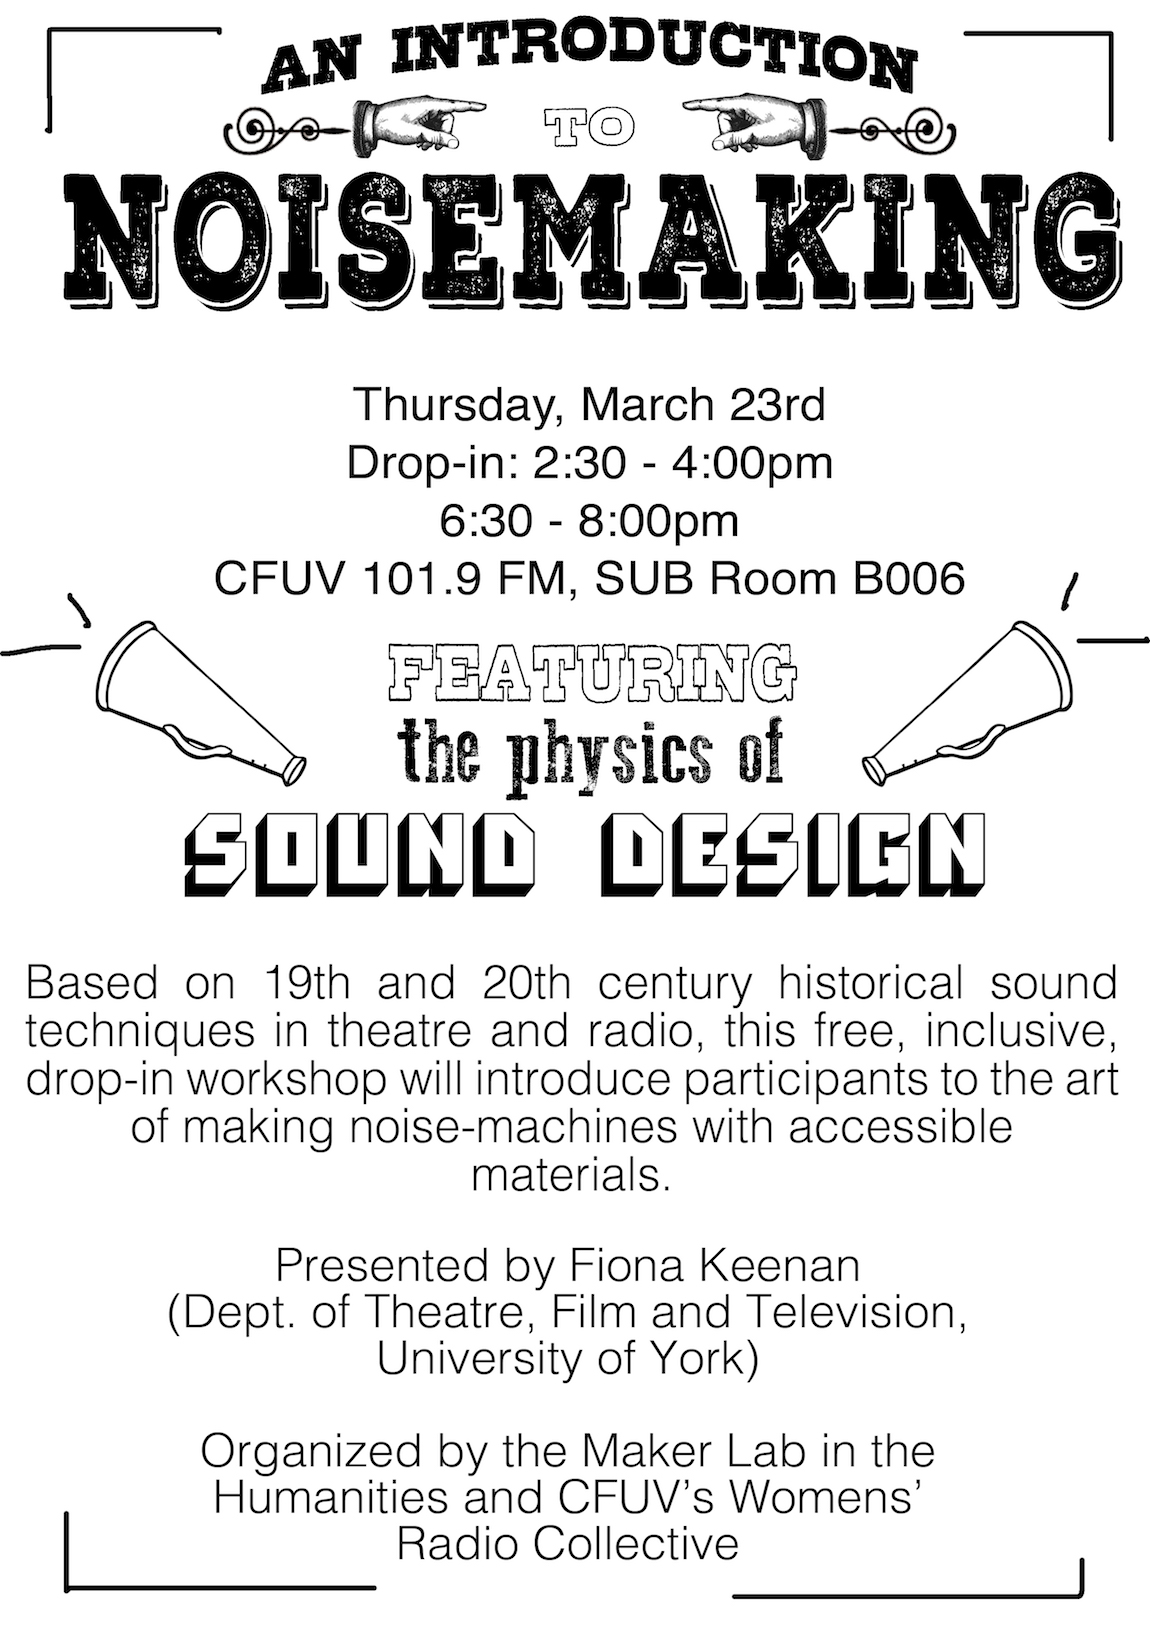 An Introduction to Noisemaking, by Fiona Keenan